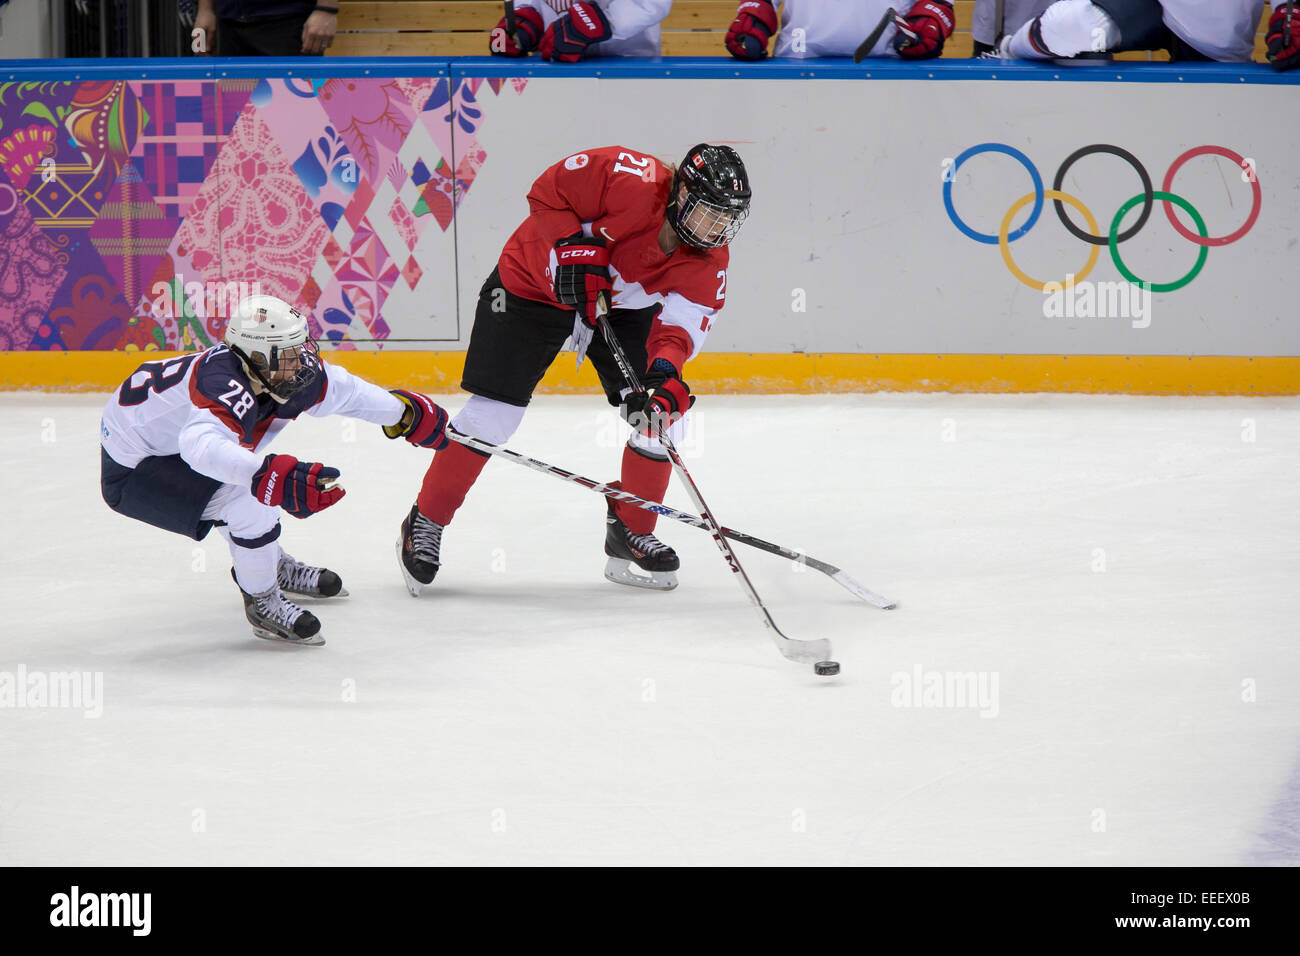 Haley Irwin (CAN)-21 and Amanda Kessel (USA)-28 during a game at the ...